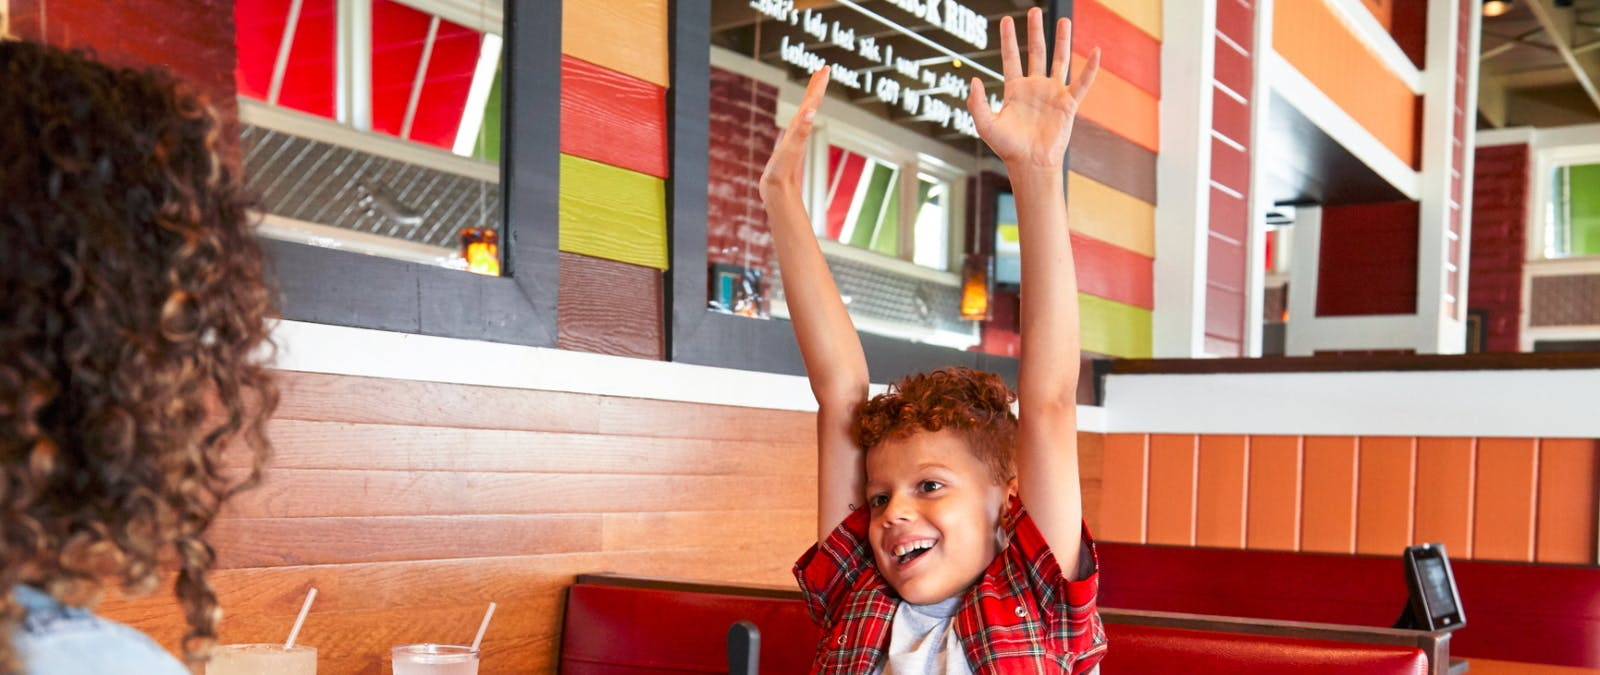 Little Boy Enjoying Dinner at Chili's  Where Kids Eat Free